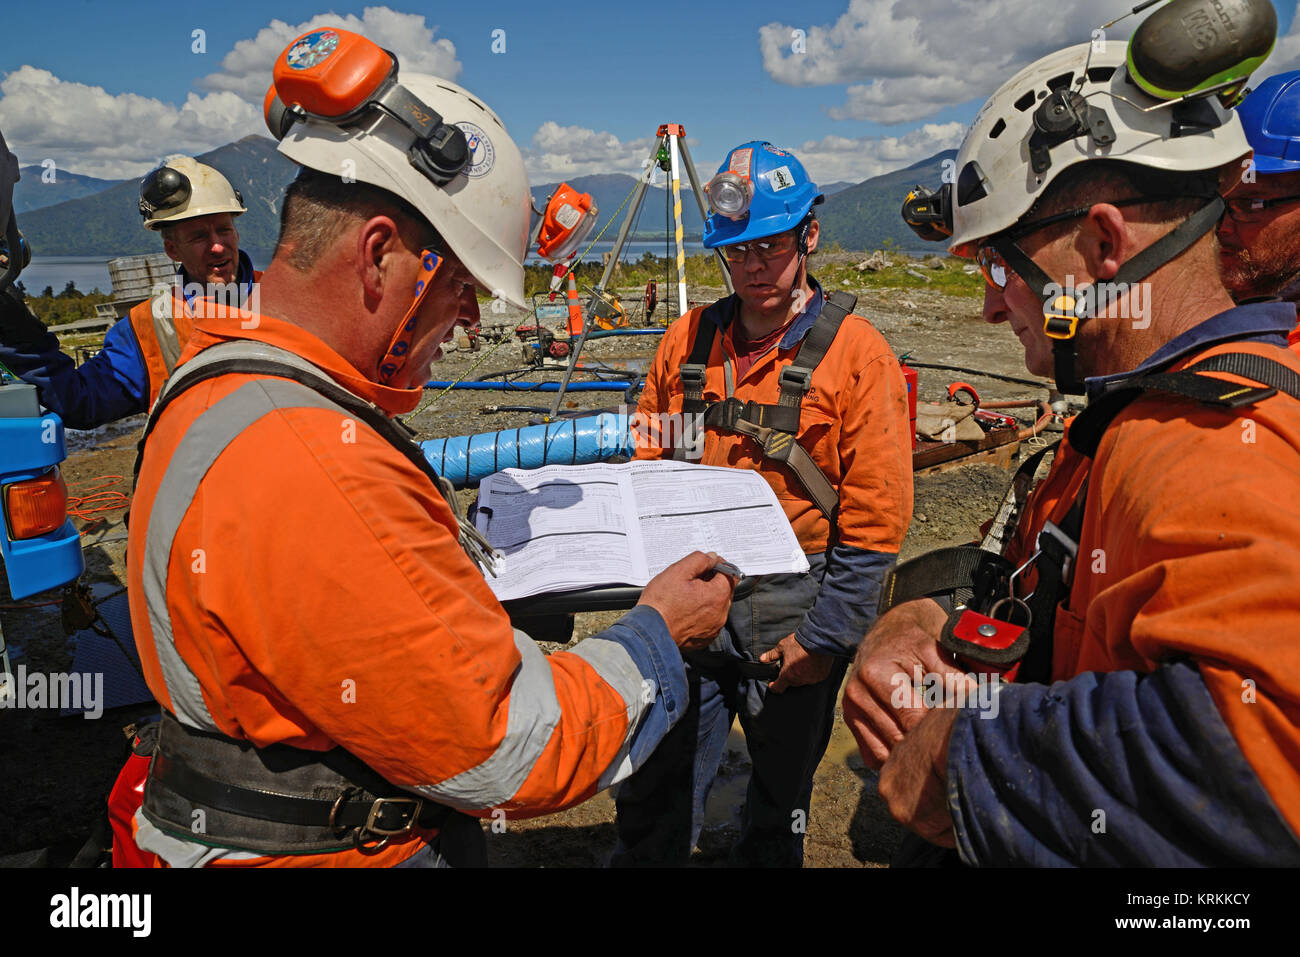 MOANA, NEW ZEALAND, OCTOBER 27, 2017: The safety officer conducts a safety meeting at an abandoned oil well before - Stock Image